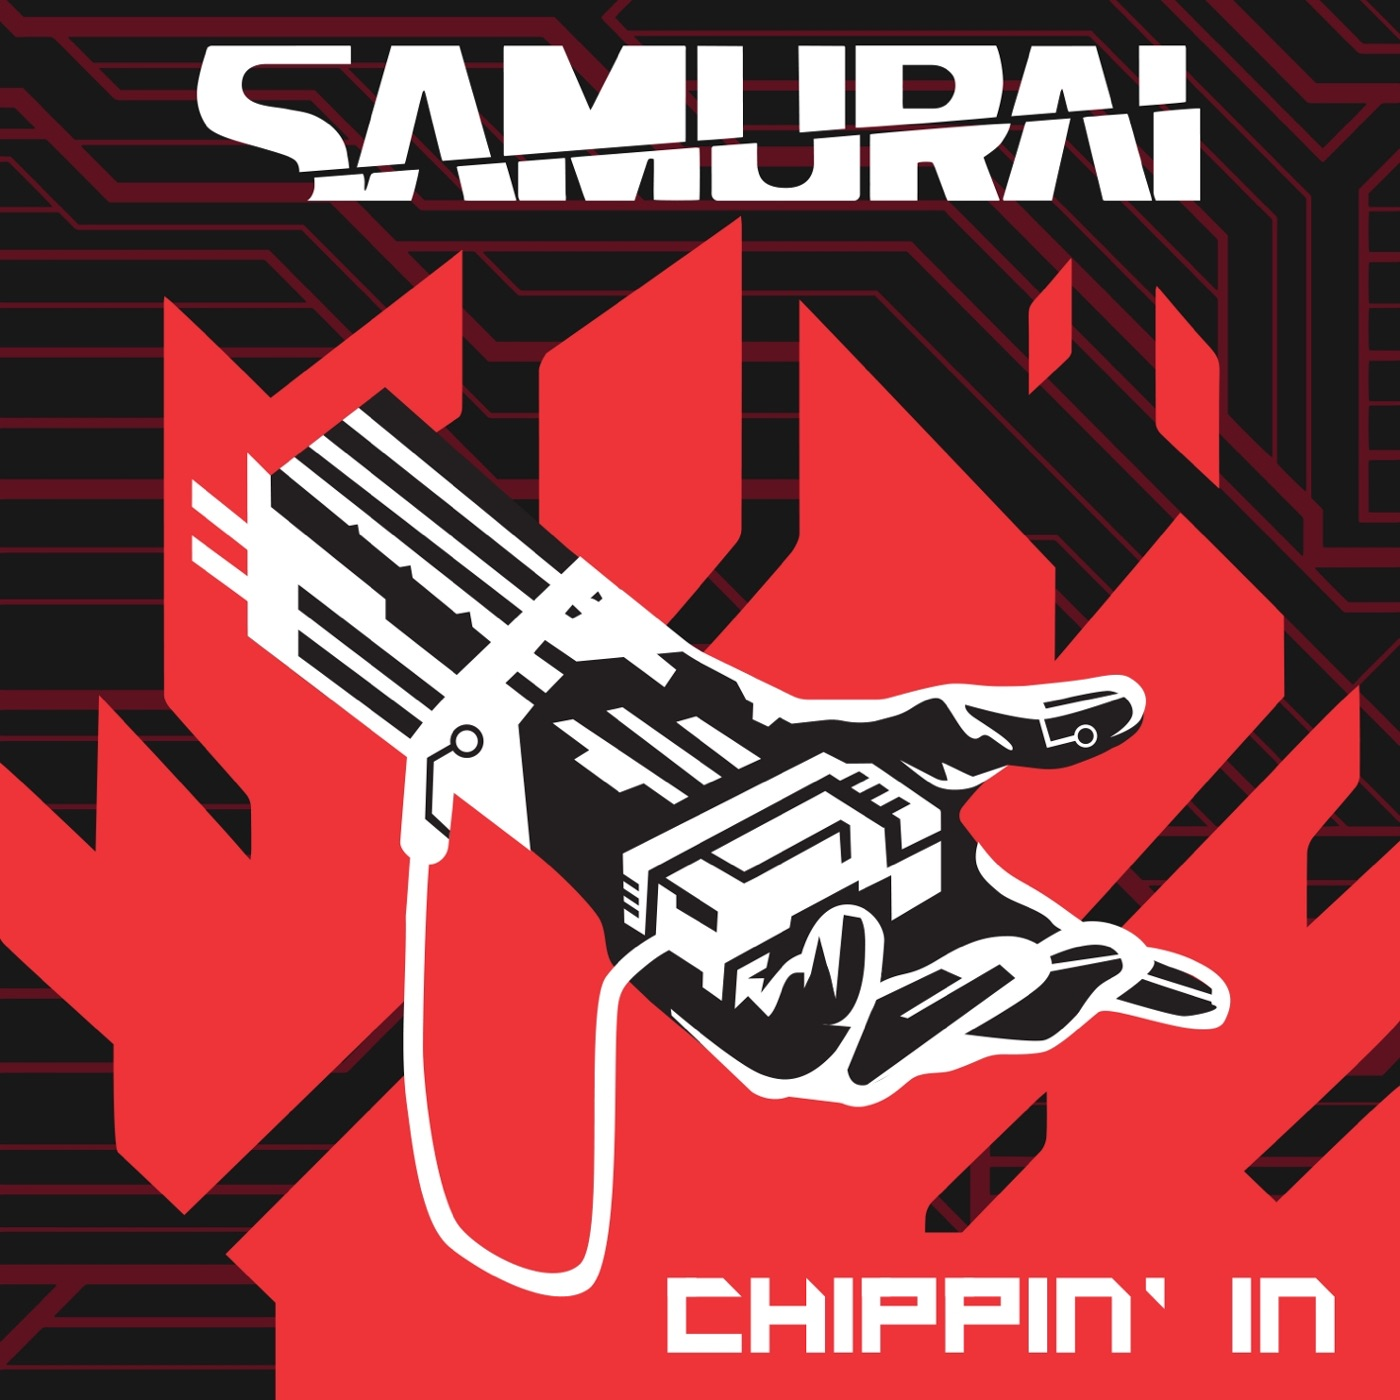 SAMURAI (Refused) - Chippin' In [single] (2019)